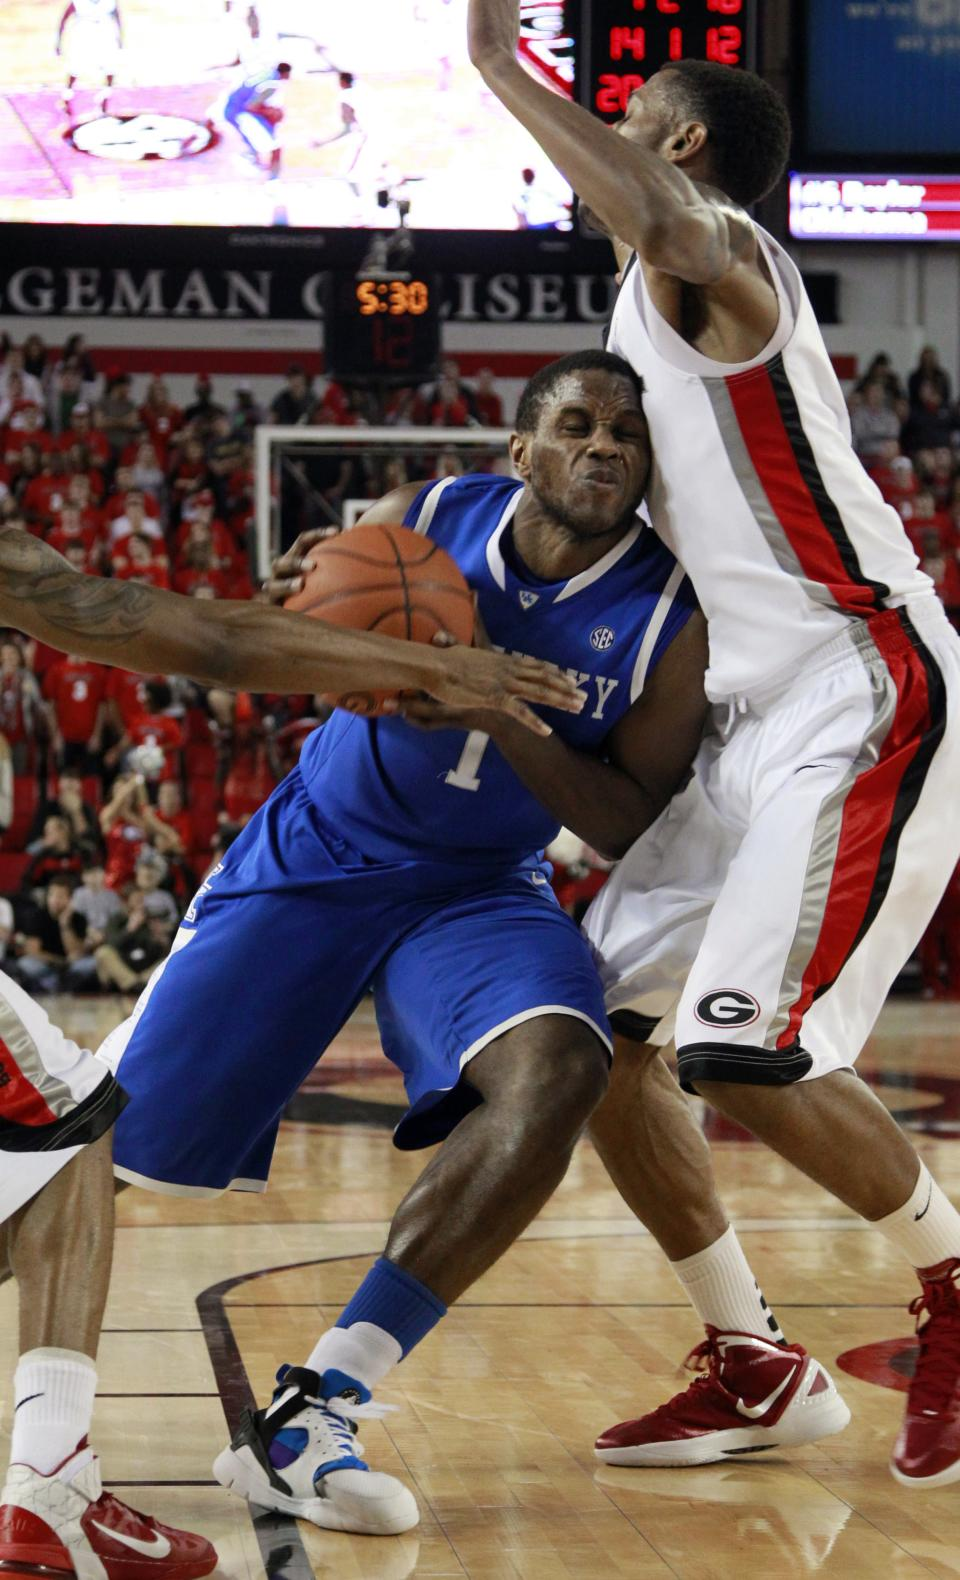 Kentucky guard Darius Miller, left, drives against Georgia guard Kentavious Caldwell-Pope in the second half of an NCAA college basketball game Tuesday, Jan. 24, 2012, in Athens, Ga. Kentucky won 57-44. (AP Photo/John Bazemore)